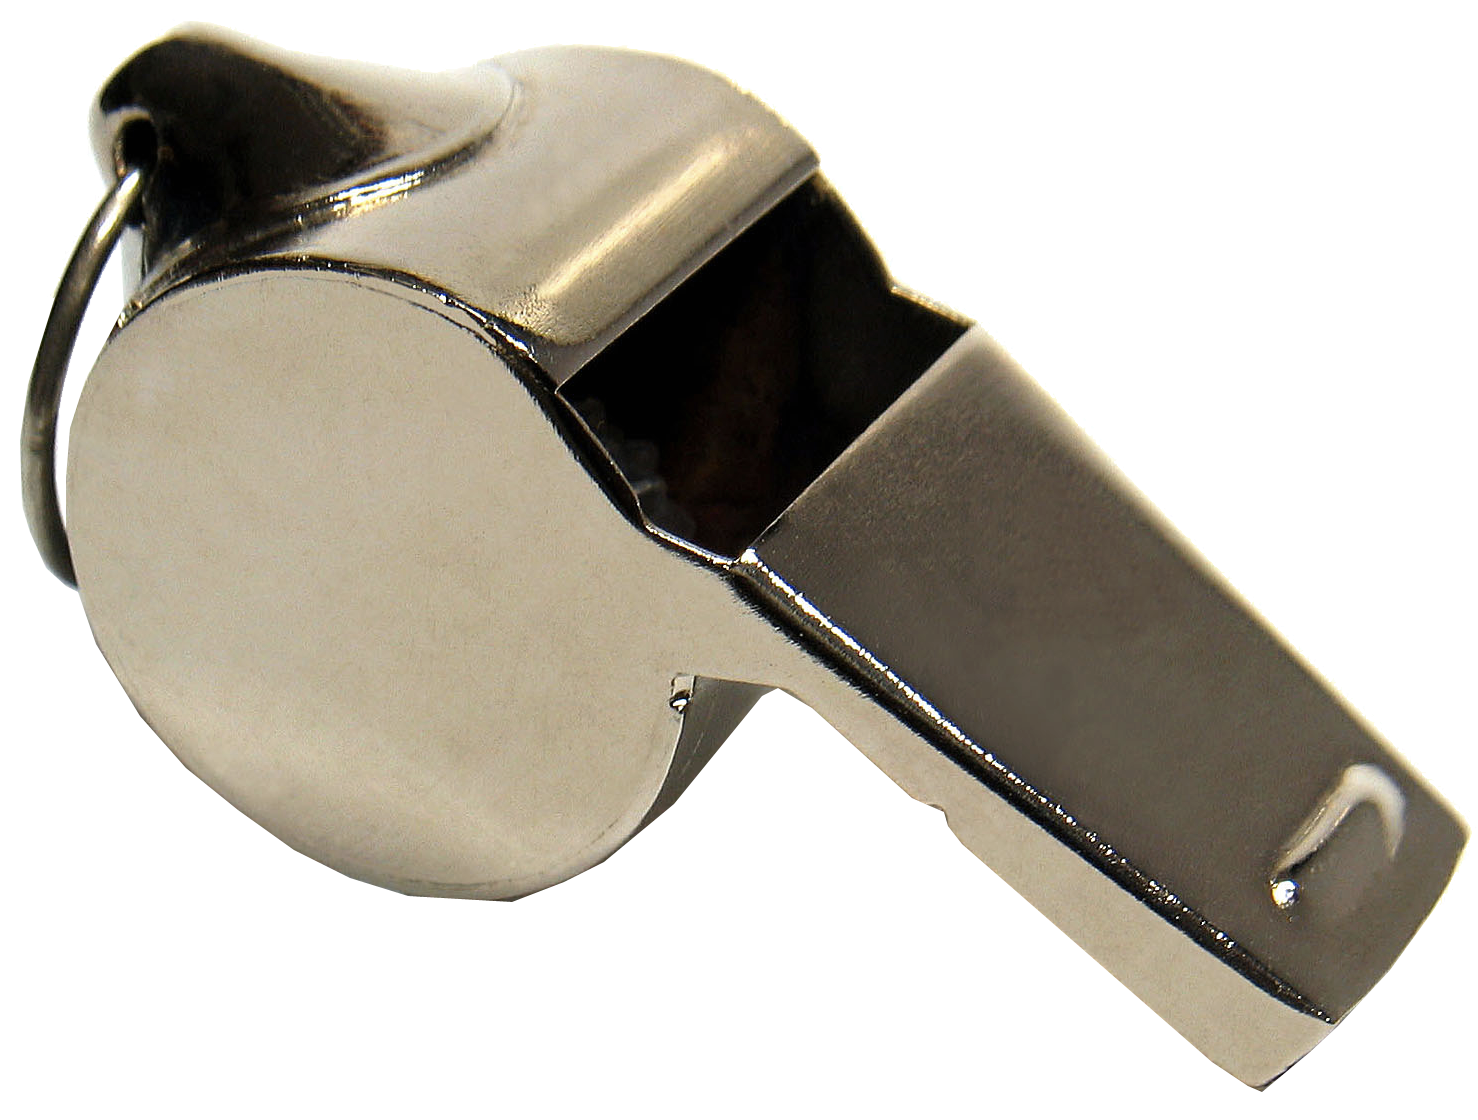 PNG Whistle - 53797